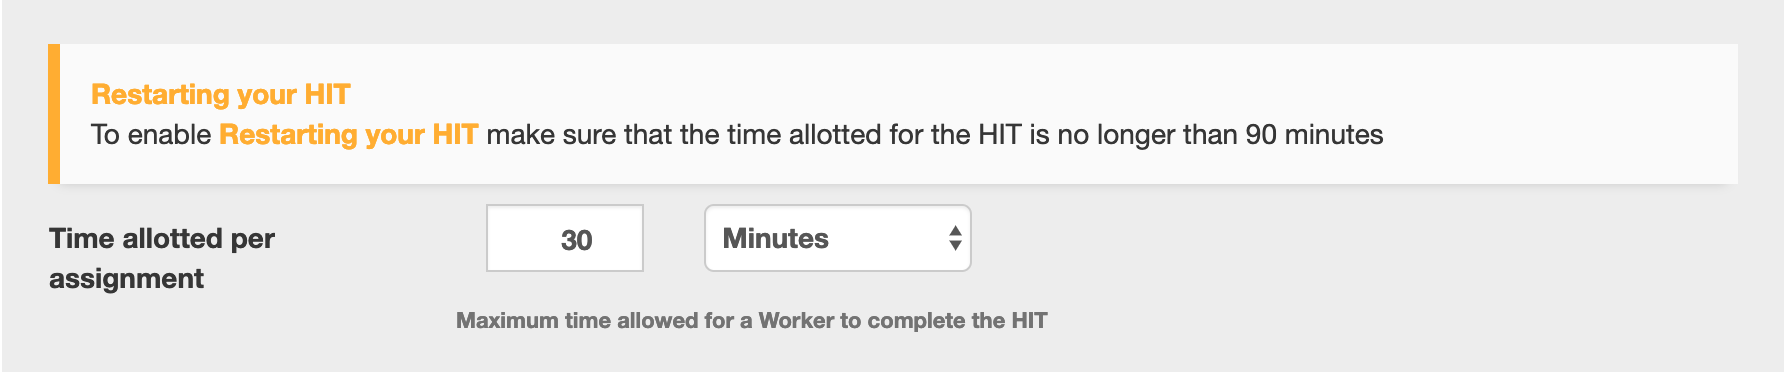 TurkPrime Setup HIT and Payment: Time Allotted Per Assignment